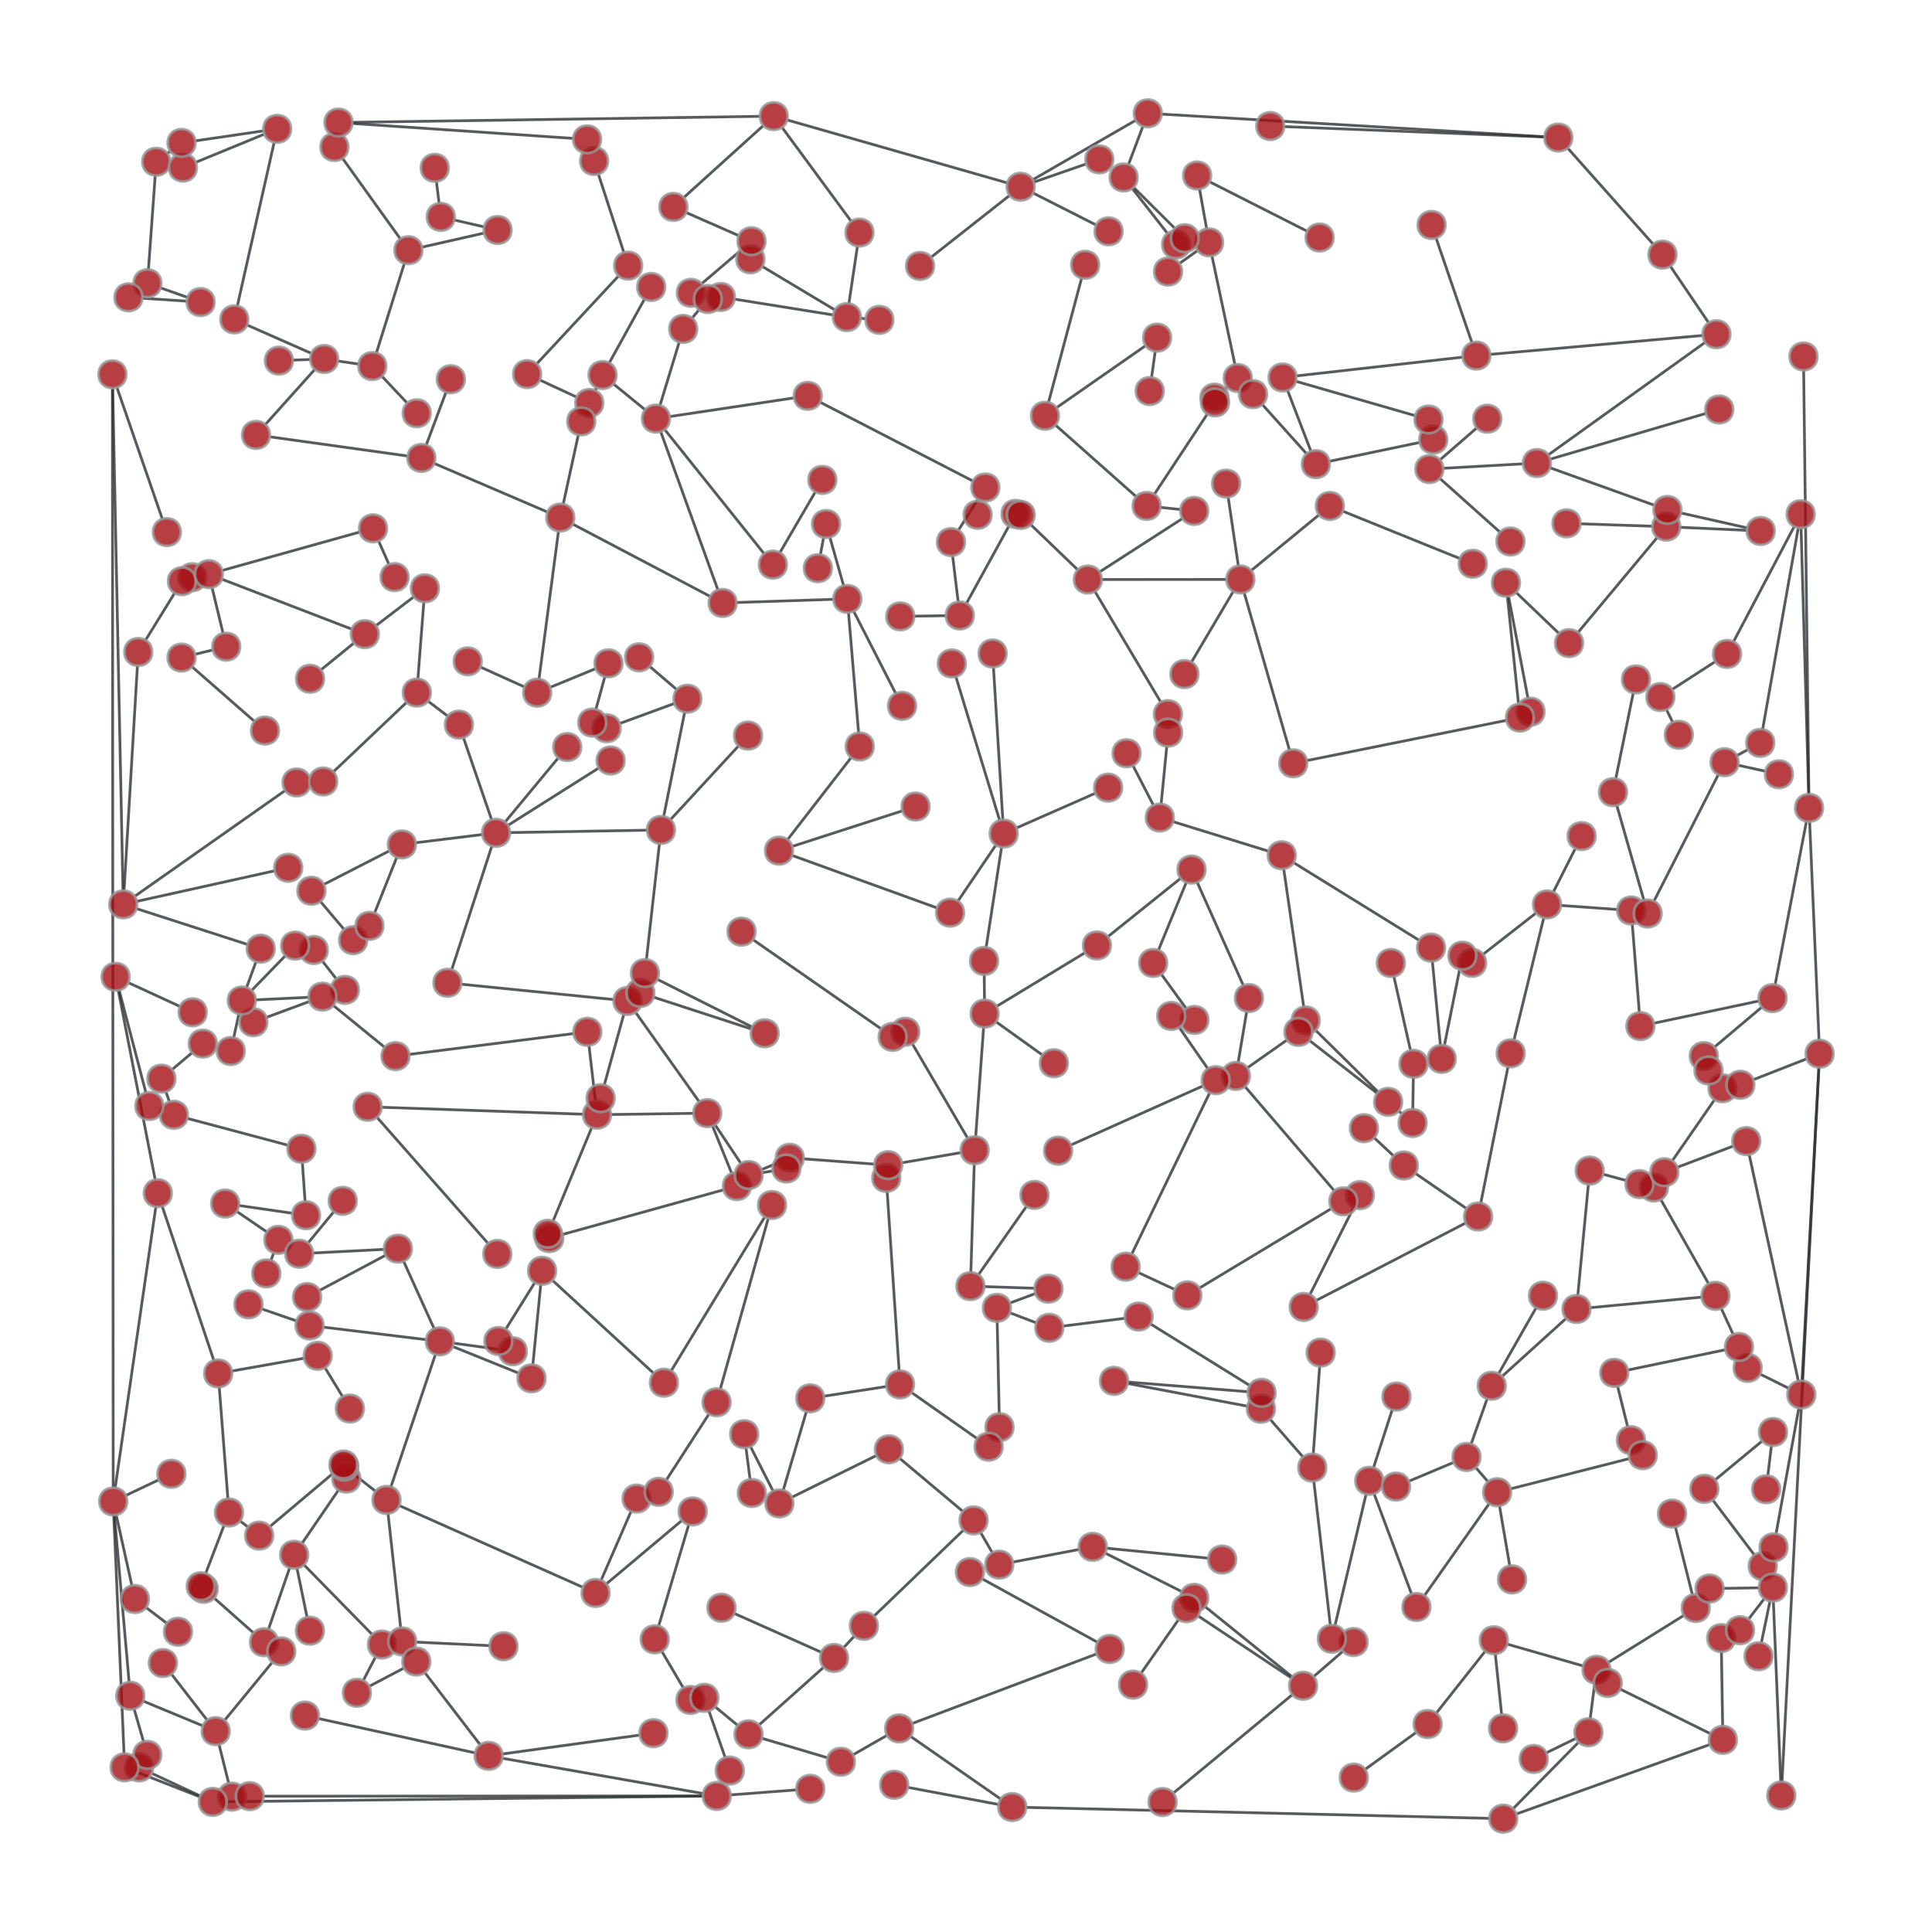 graph_tool topology - Assessing graph topology — graph-tool